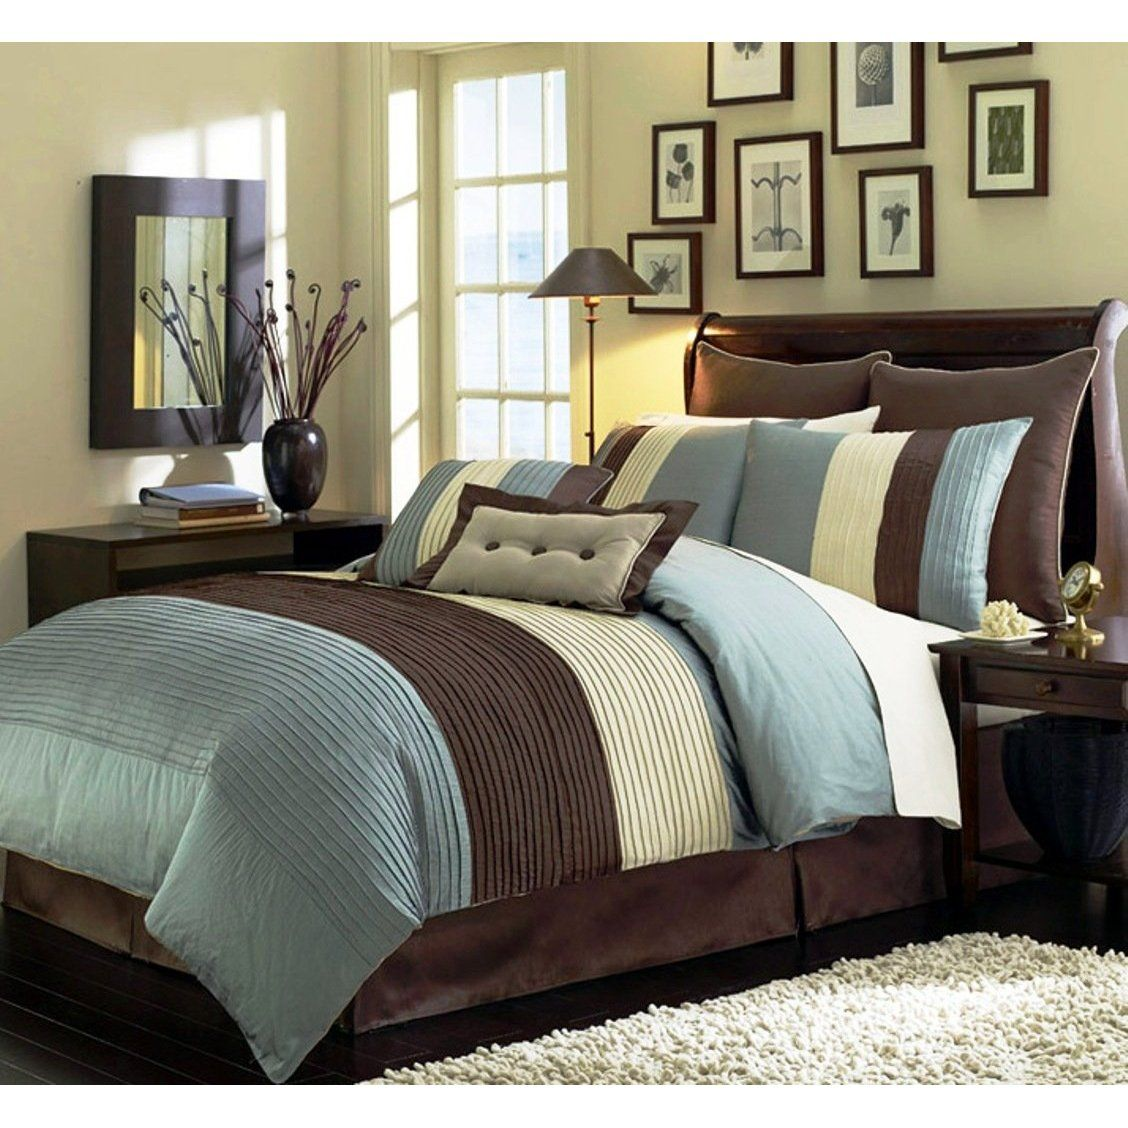 chocolate brown and blue bedding sets | brown comforter, queen